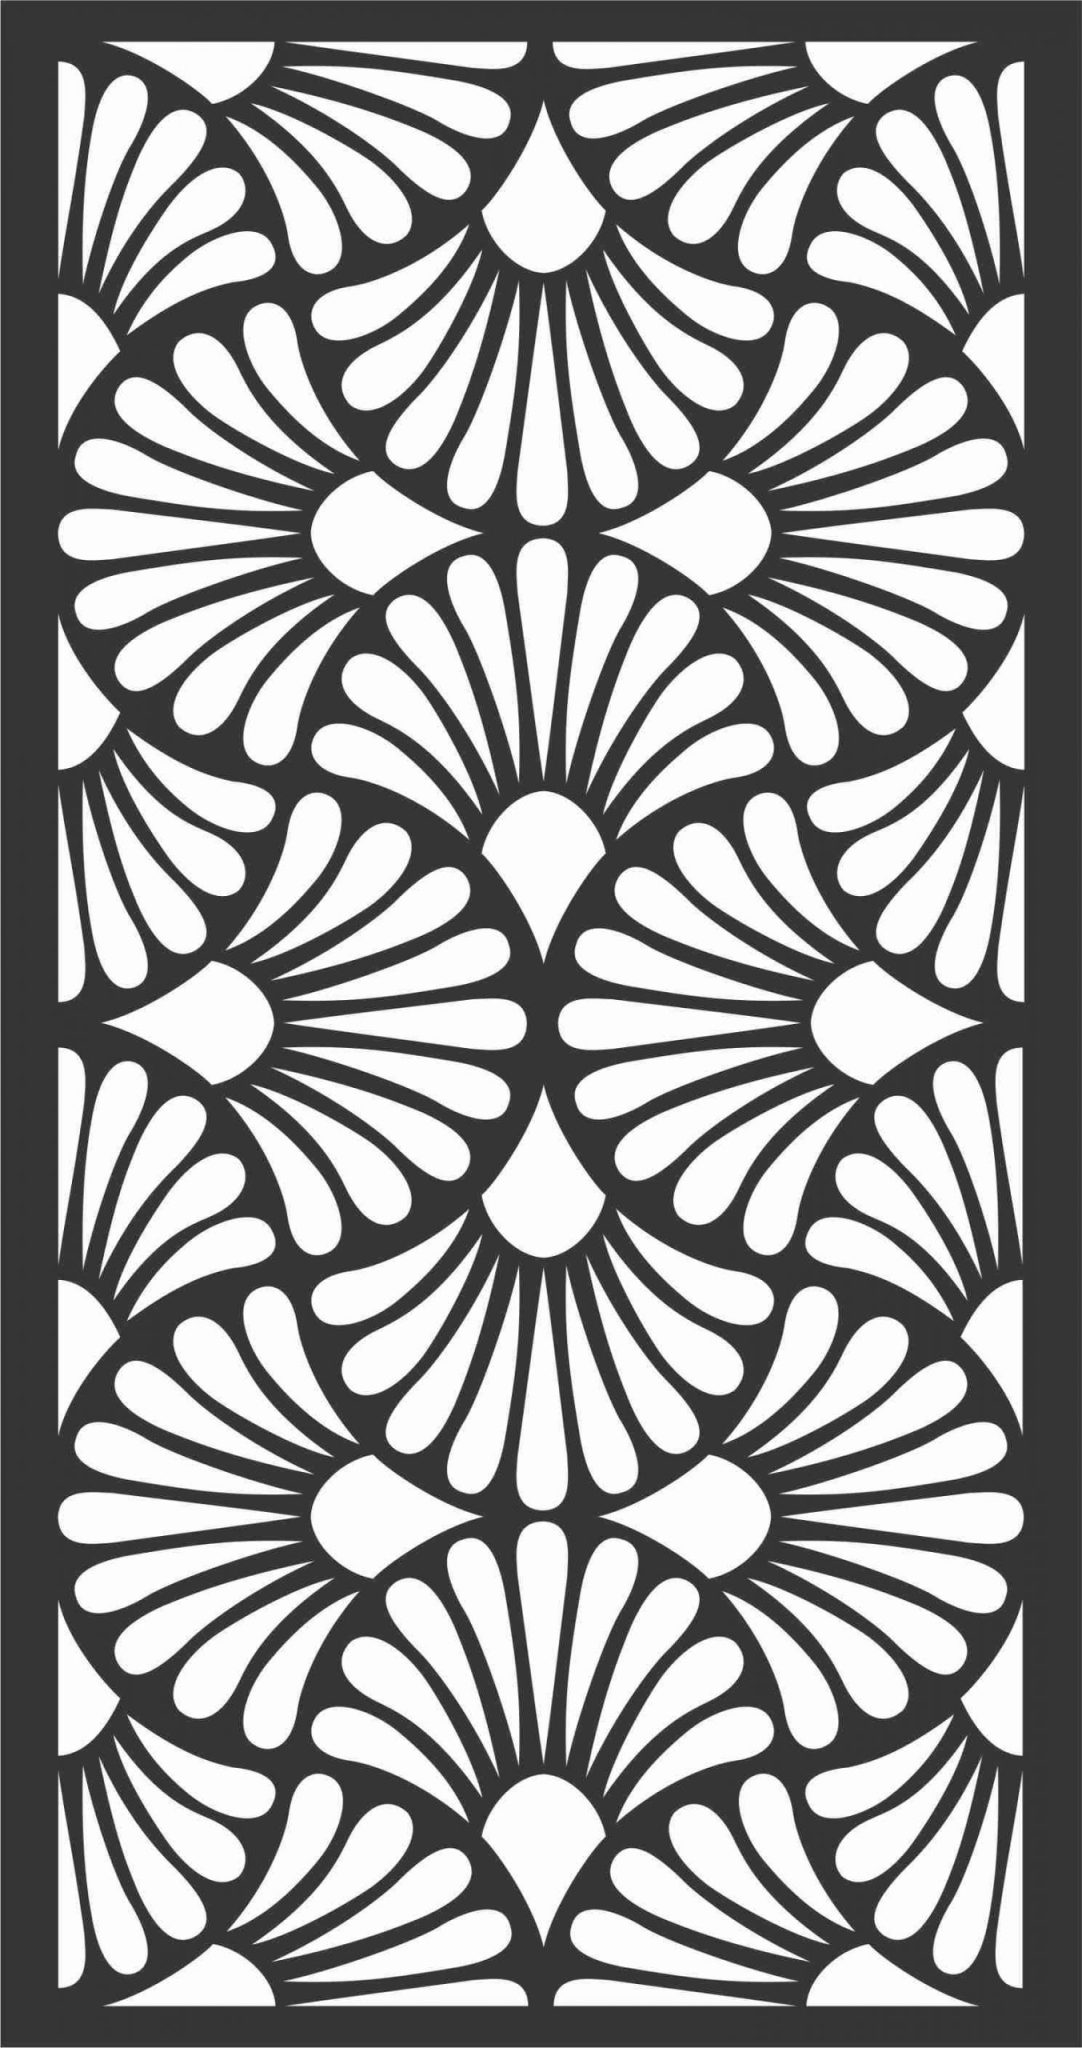 Floral Screen Patterns Design 15 Free DXF File